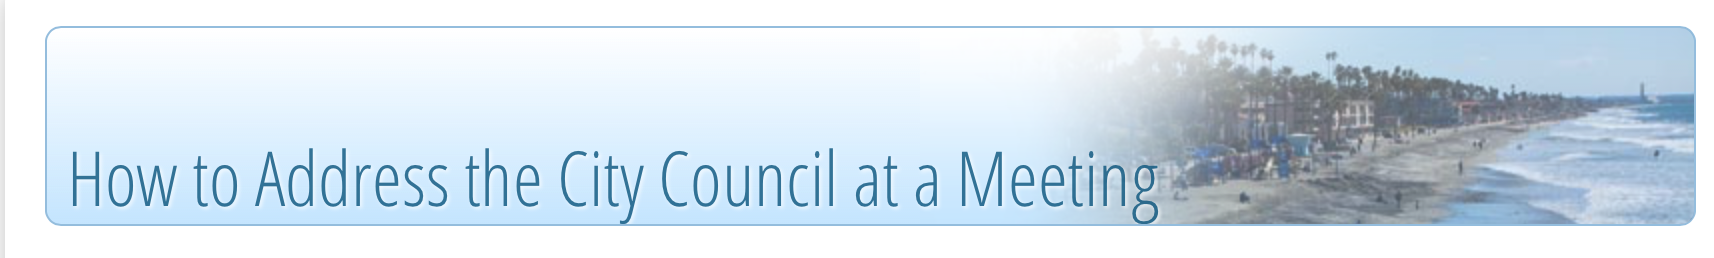 How to address the City Council at a Meeting